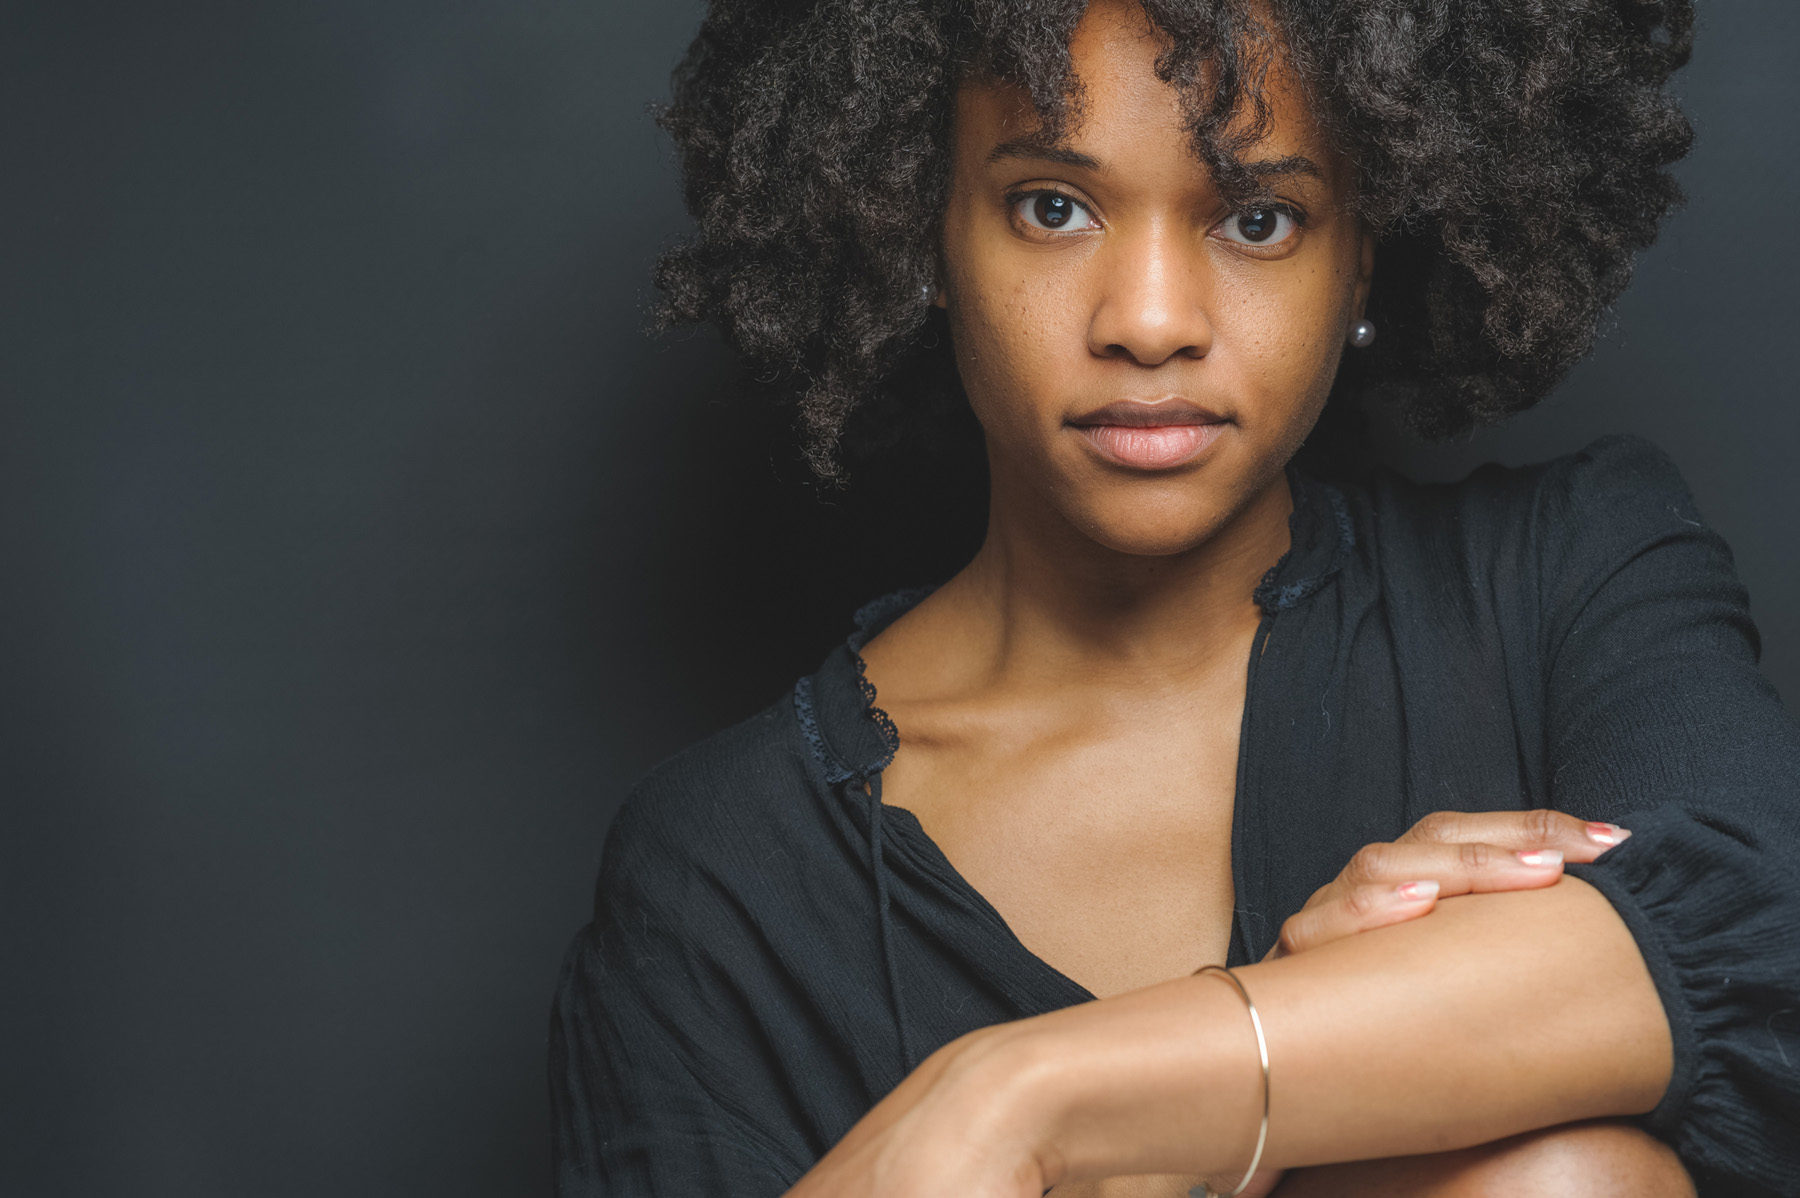 portrait of photographer and dancer Michelle Reid sitting in front of a black background wearing a black top with a gold bracelet on her wrist.